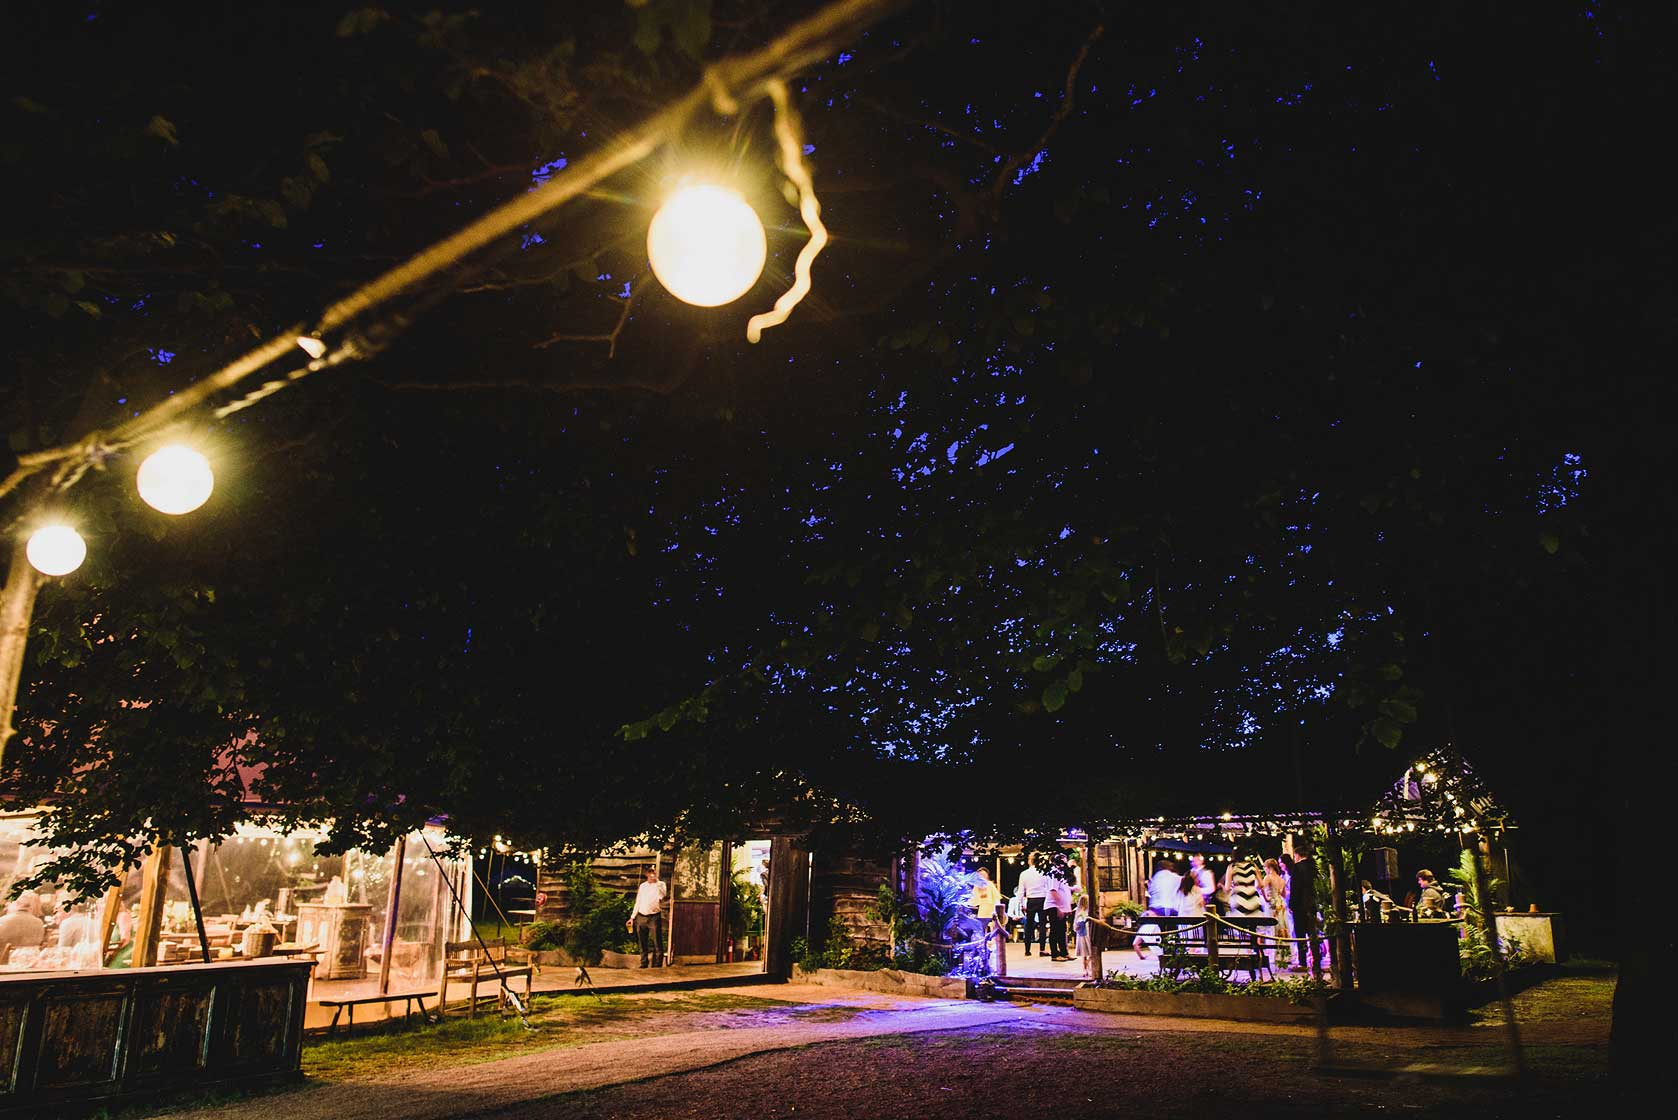 Reportage Wedding Photography at The Dreys